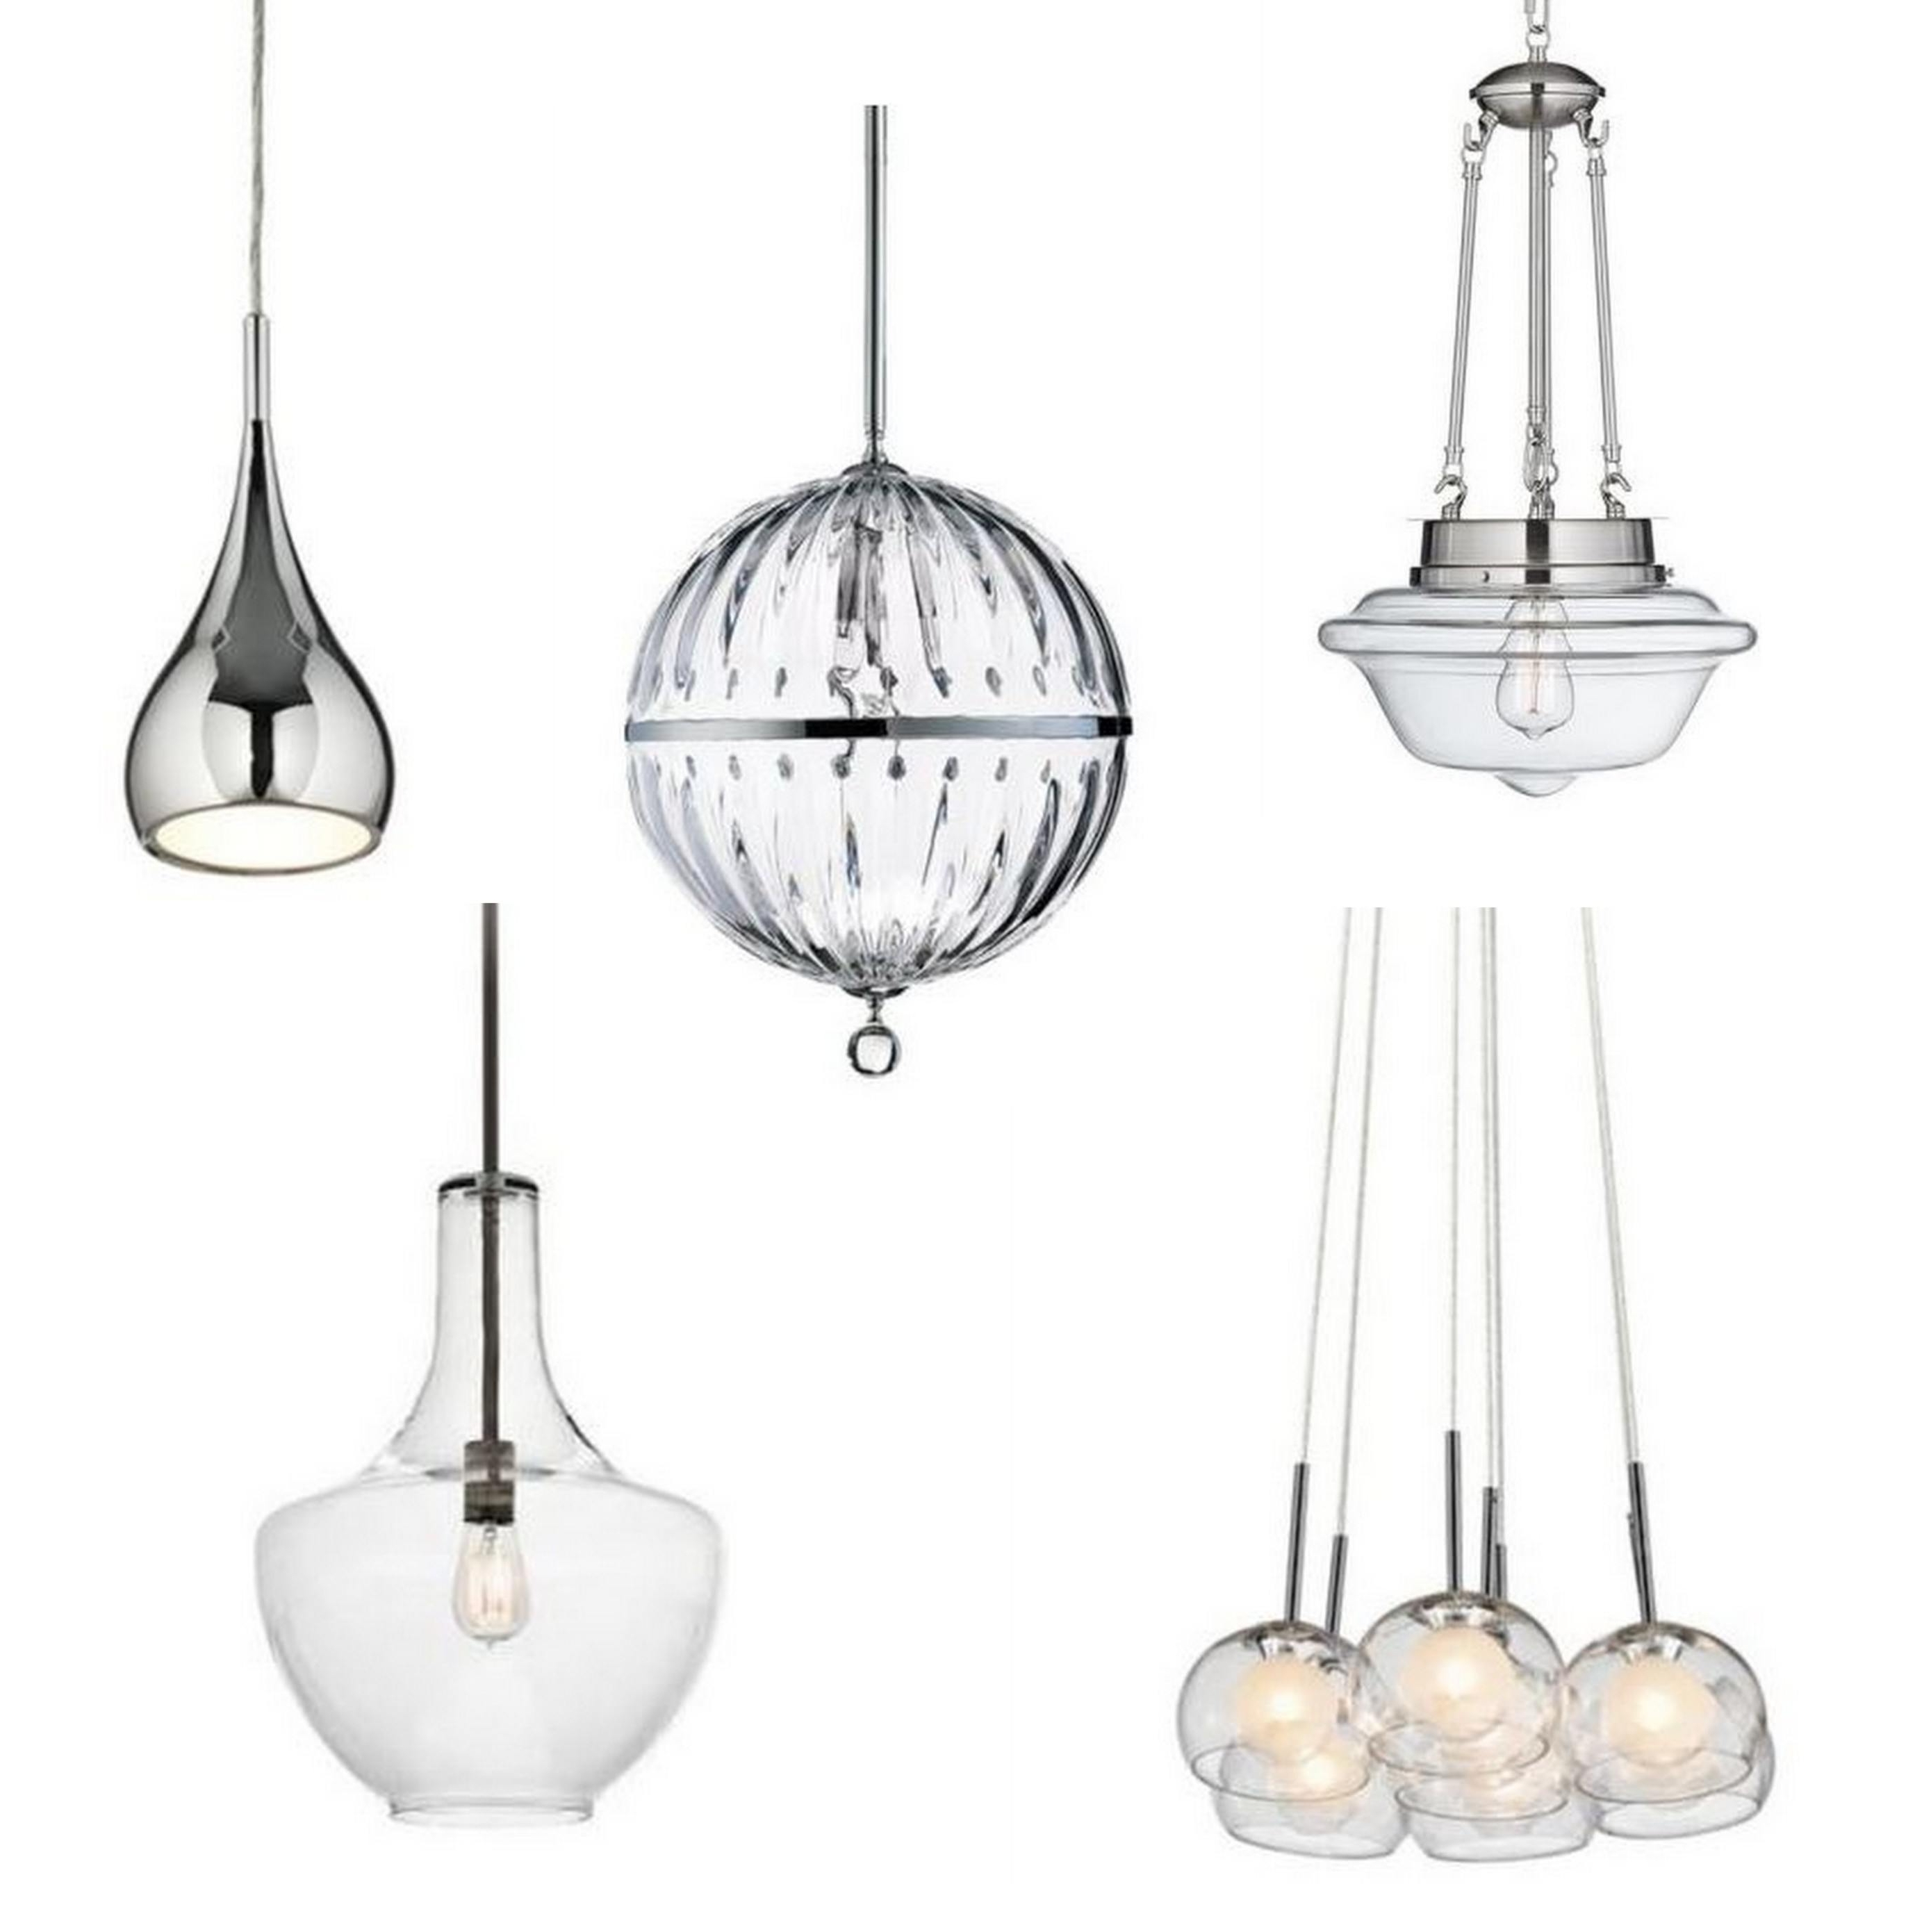 John Lewis Outdoor Ceiling Lights Within Latest 59 Great Astounding Amazing Cluster Glass Pendant Light Fixture On (Gallery 5 of 20)